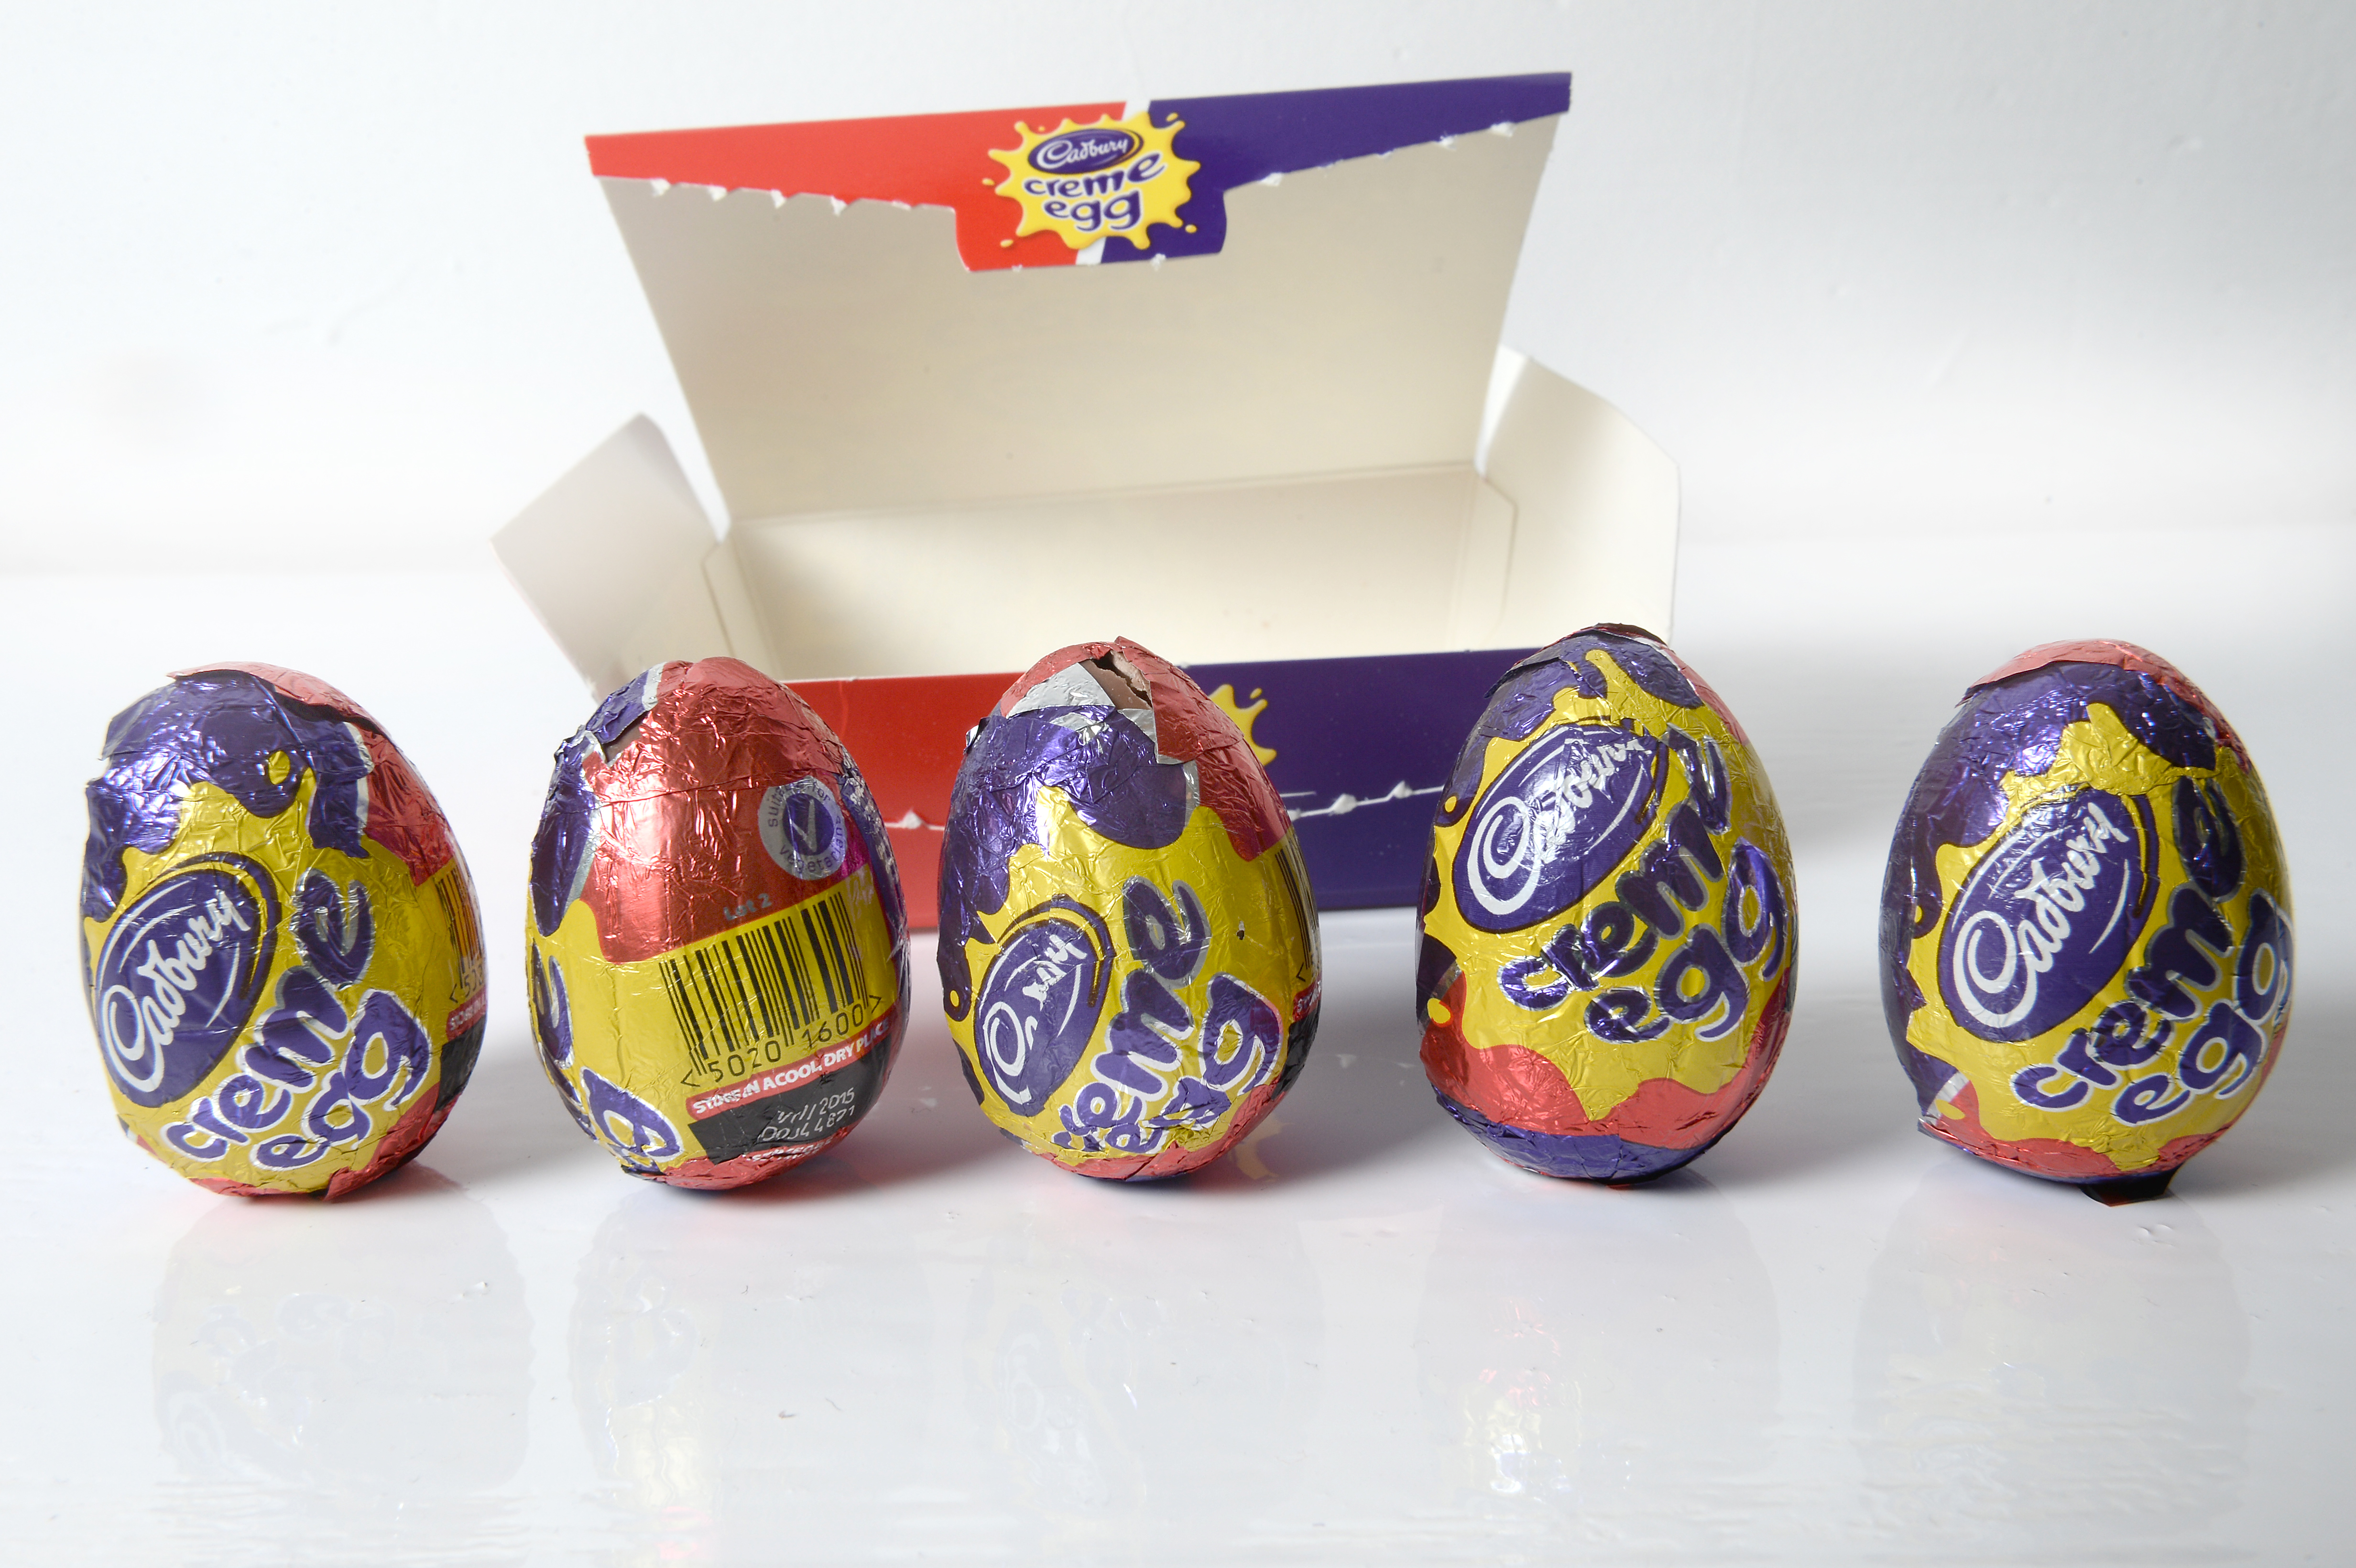 Thousands of eggs have been hidden across the UK. Credit: PA